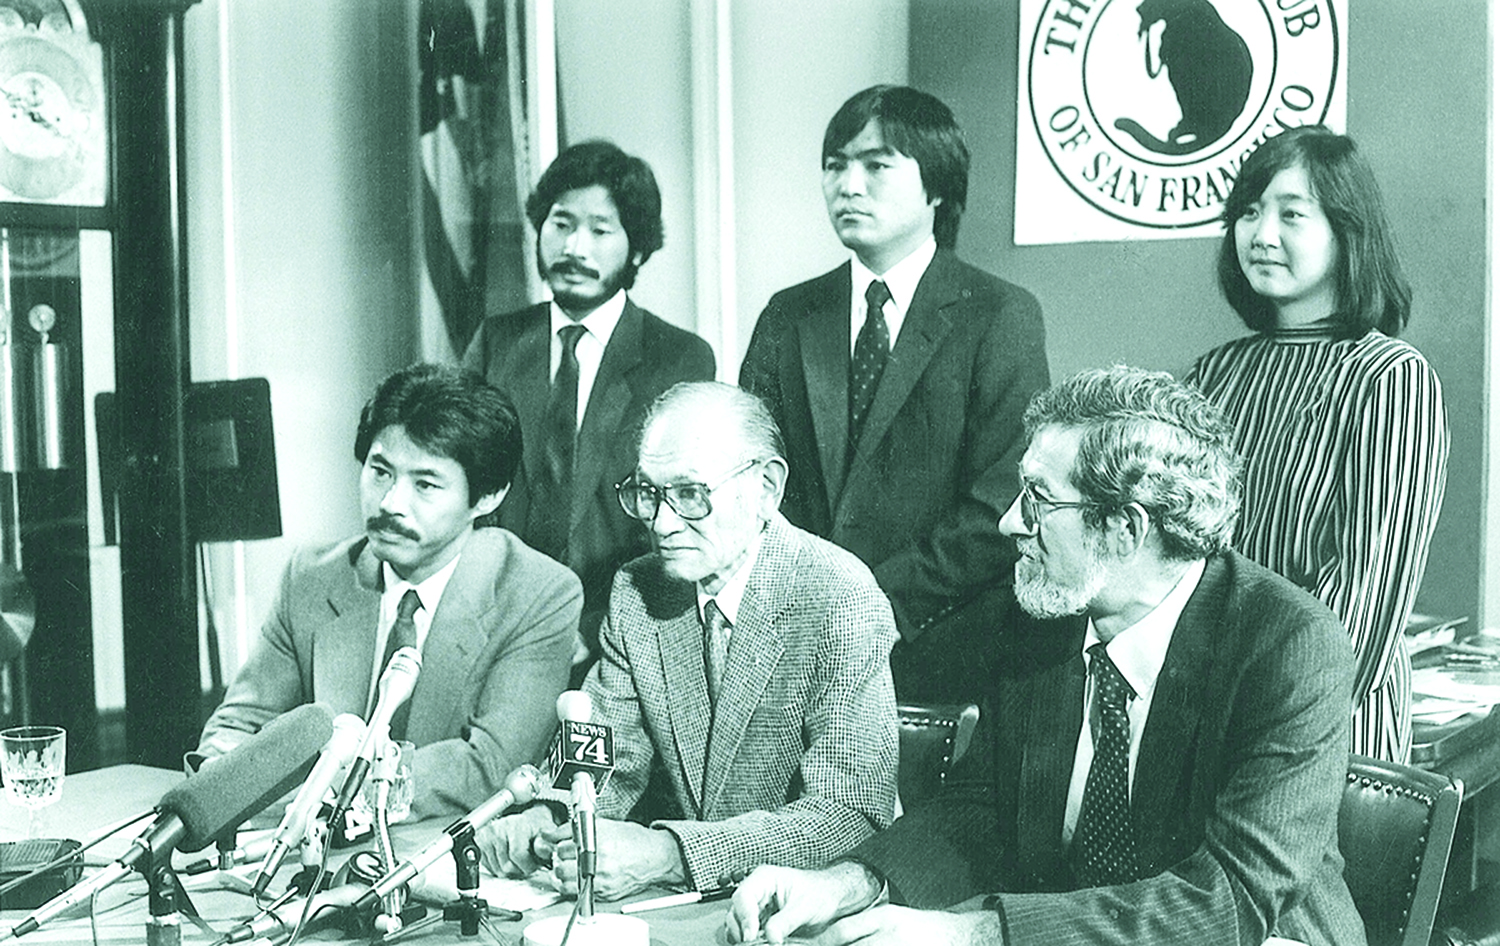 Group photo of some of the members of Fred Korematsu's coram nobis legal team.